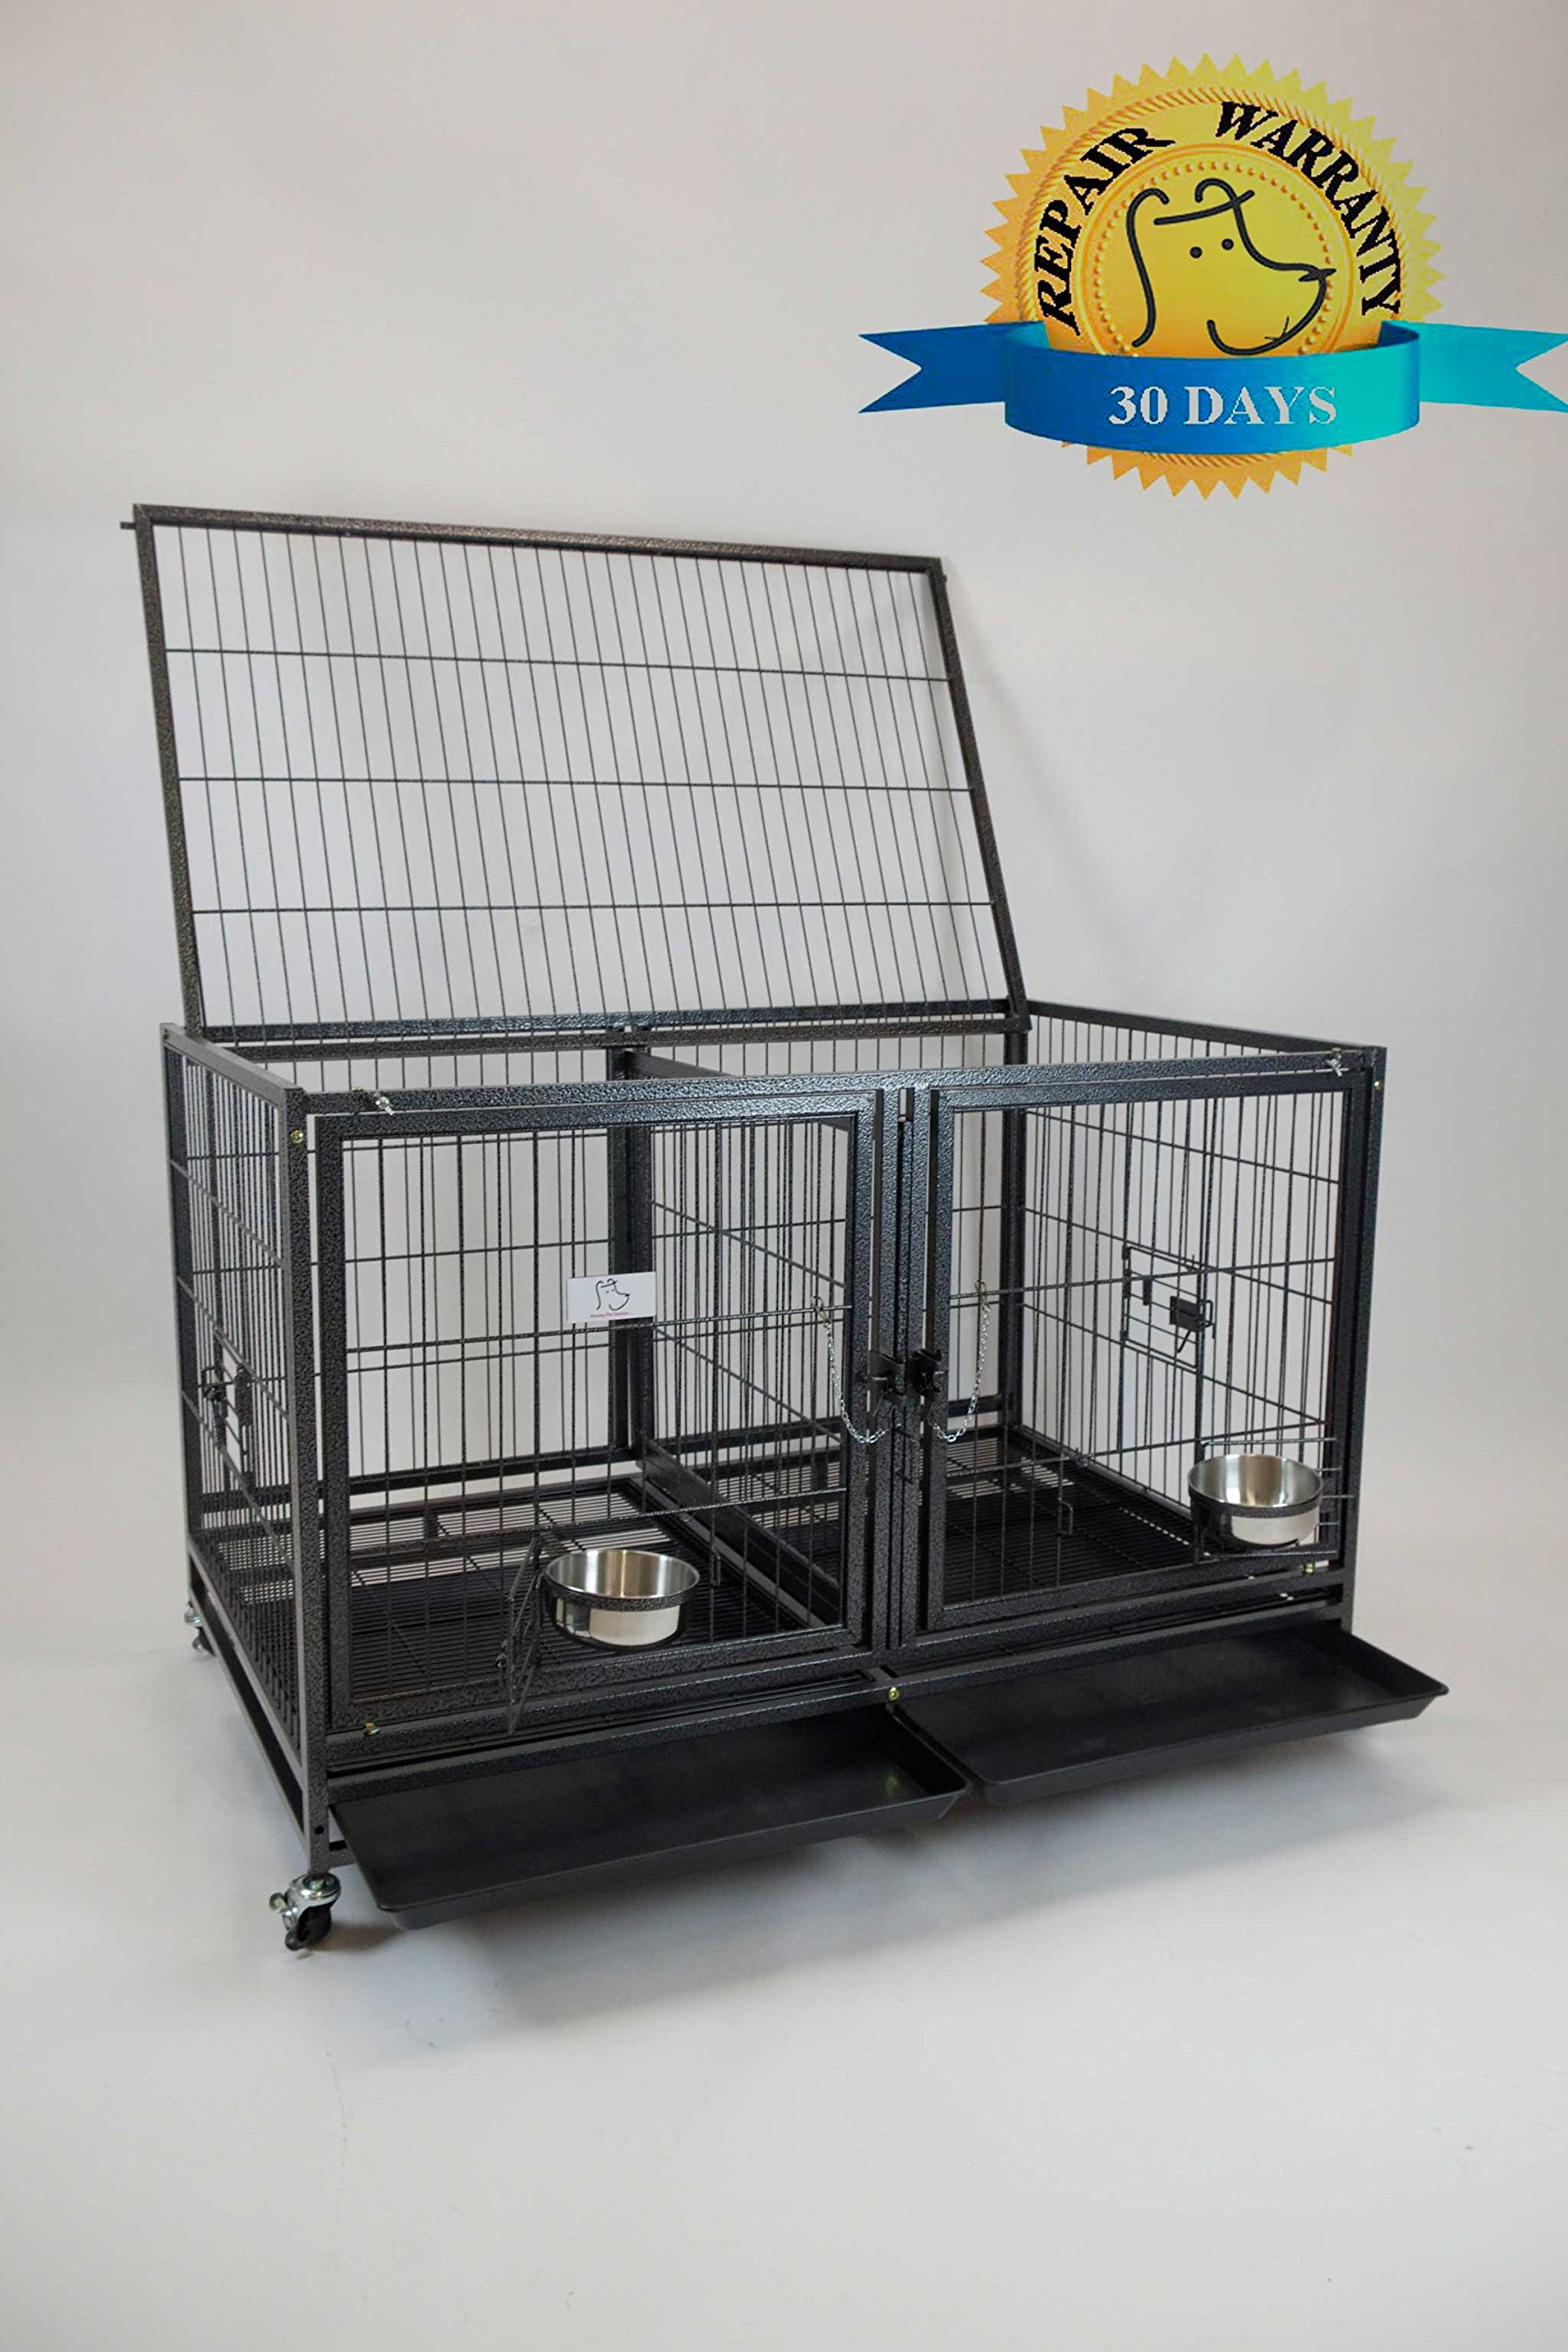 Homey Pet-43 All Metal Open Top Stackable Heavy Duty Cage(Upper) w/Floor Grid, Tray, Divider, and Feeding Bowl by Homey Pet